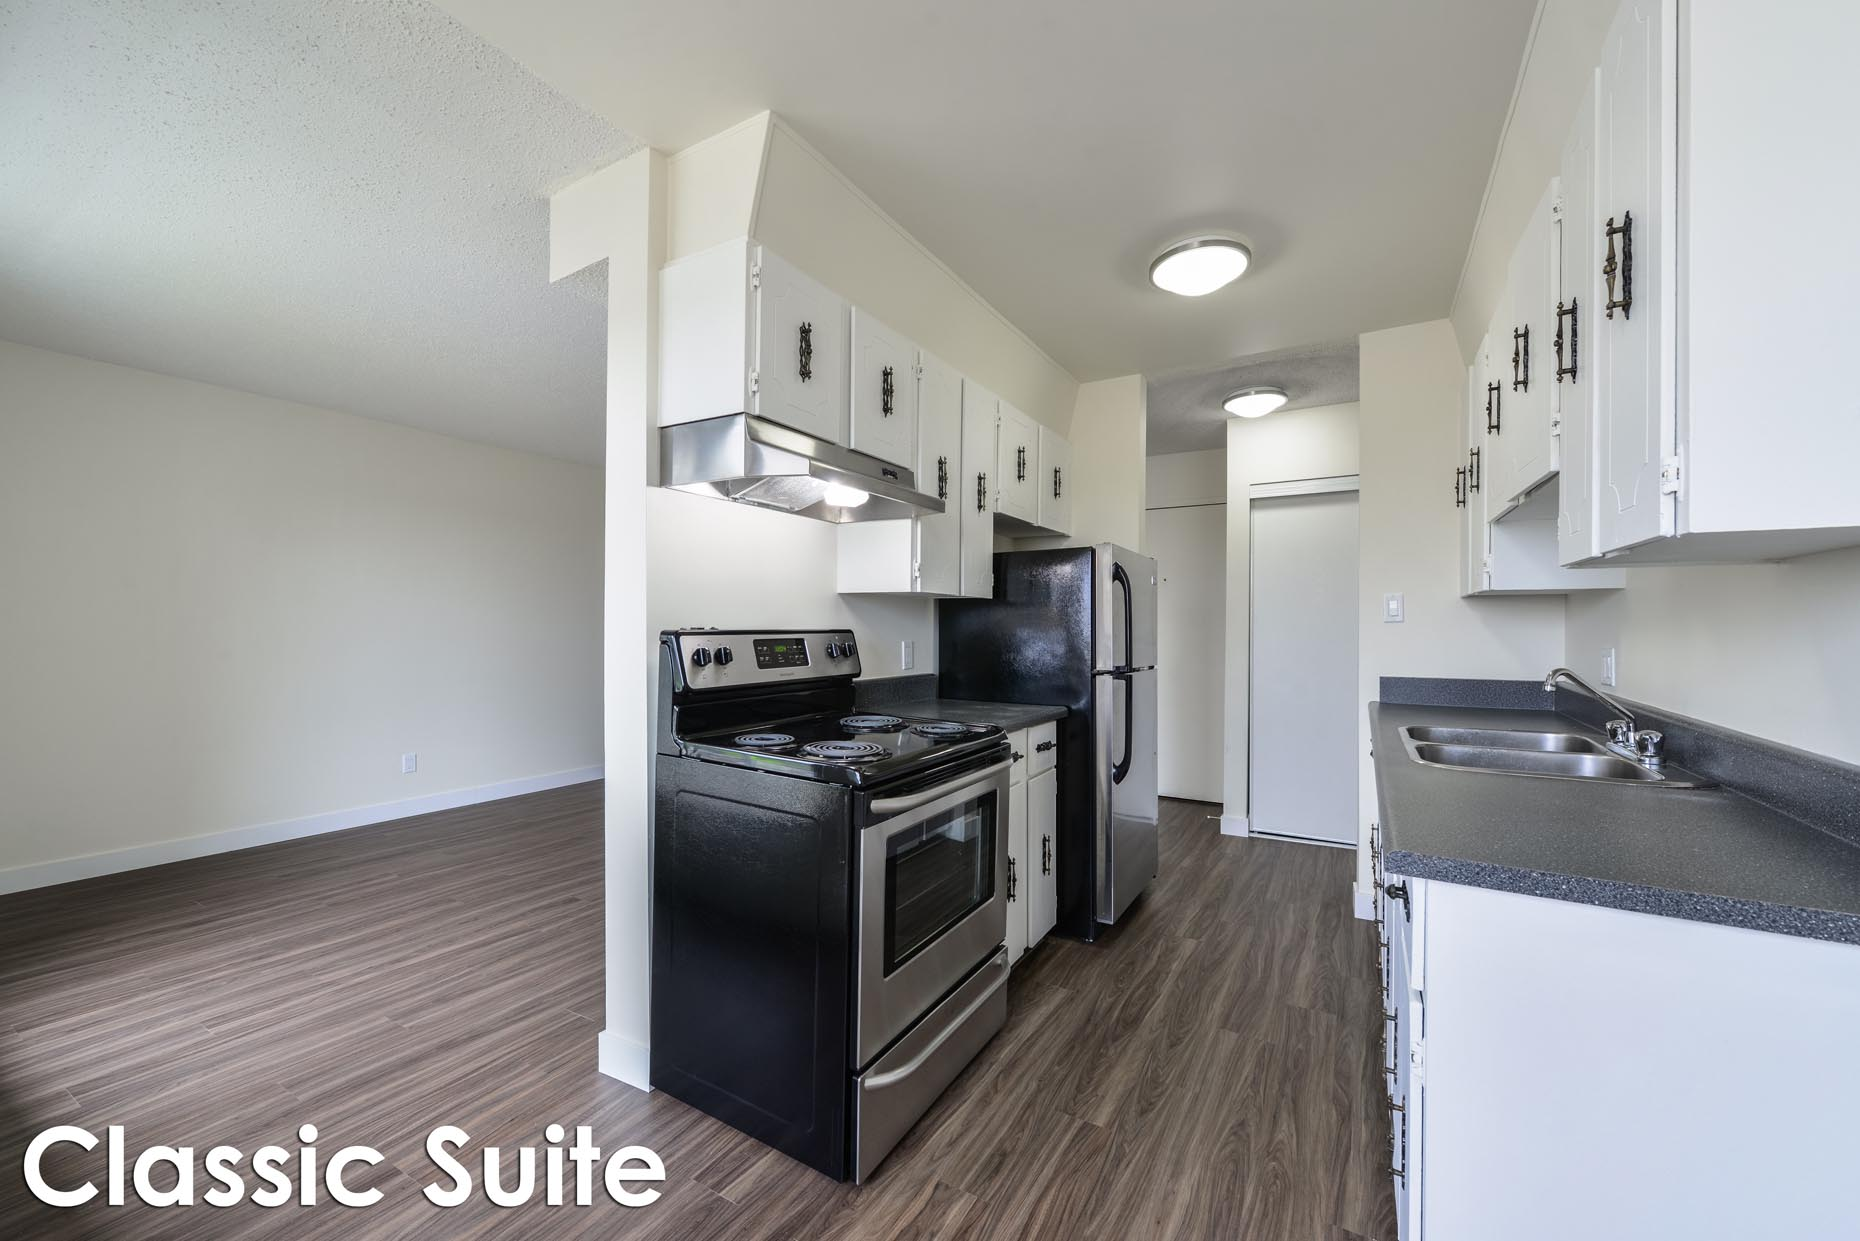 Classic Kitchen suite in Alexander Plaza